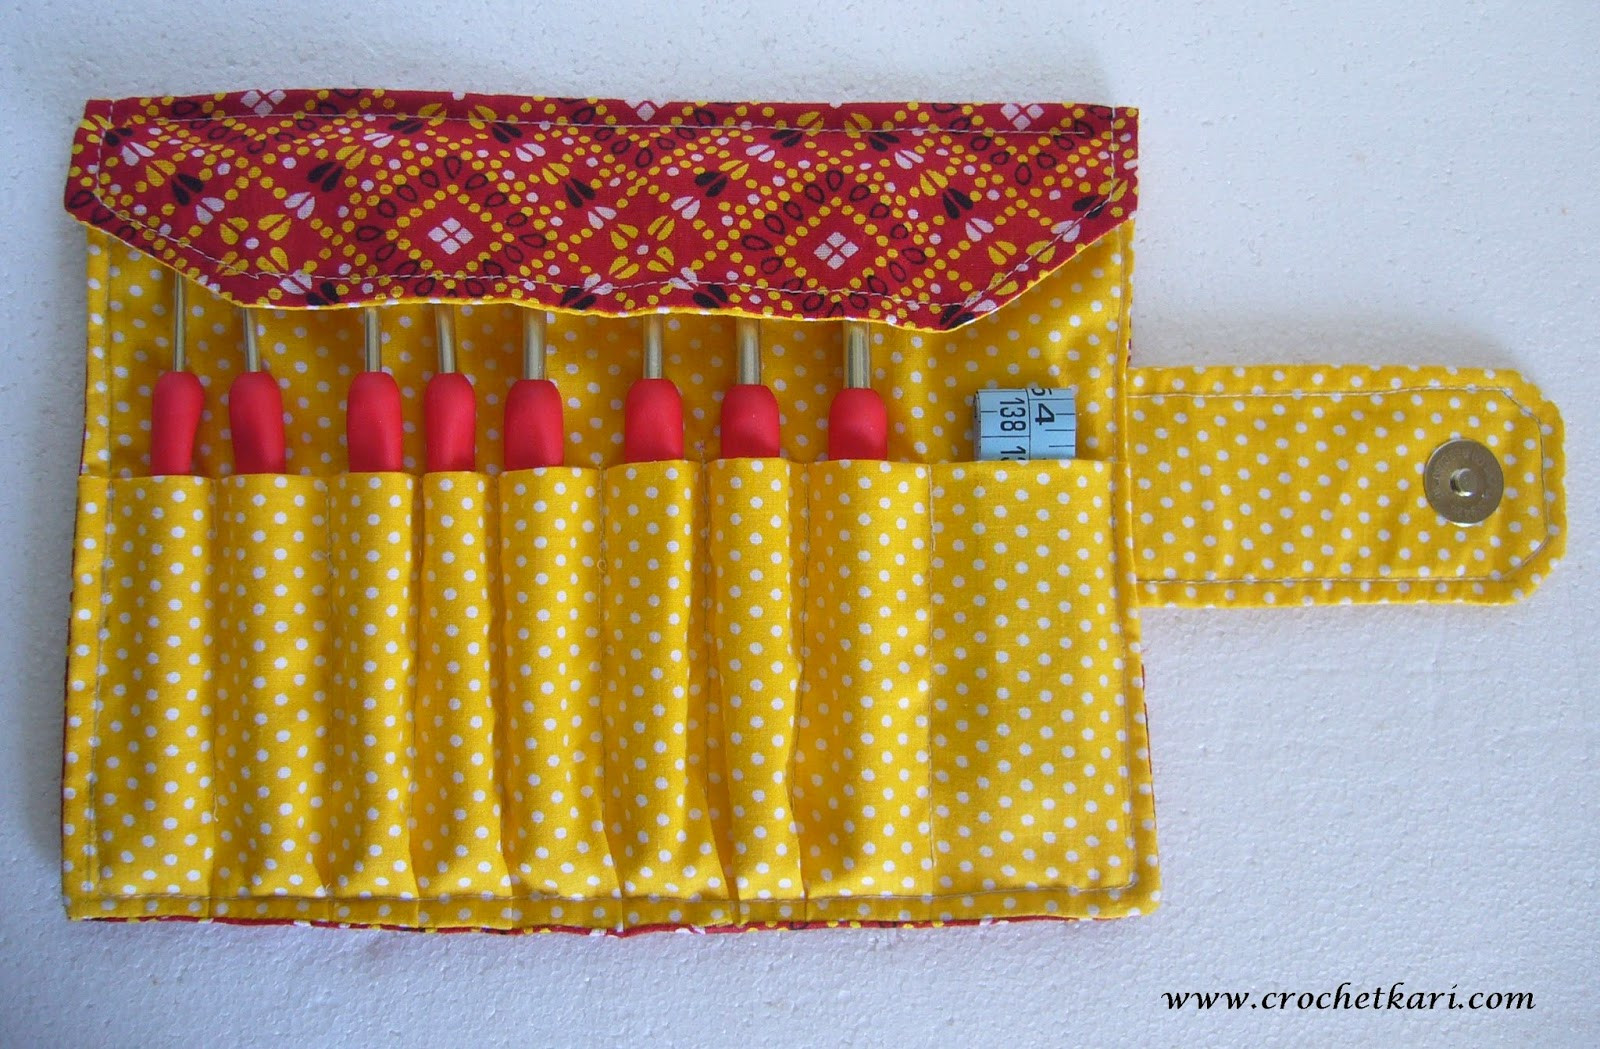 Elegant Crochetkari Crochet Hook Case Crochet Hook Sets with Case Of Amazing 49 Images Crochet Hook Sets with Case